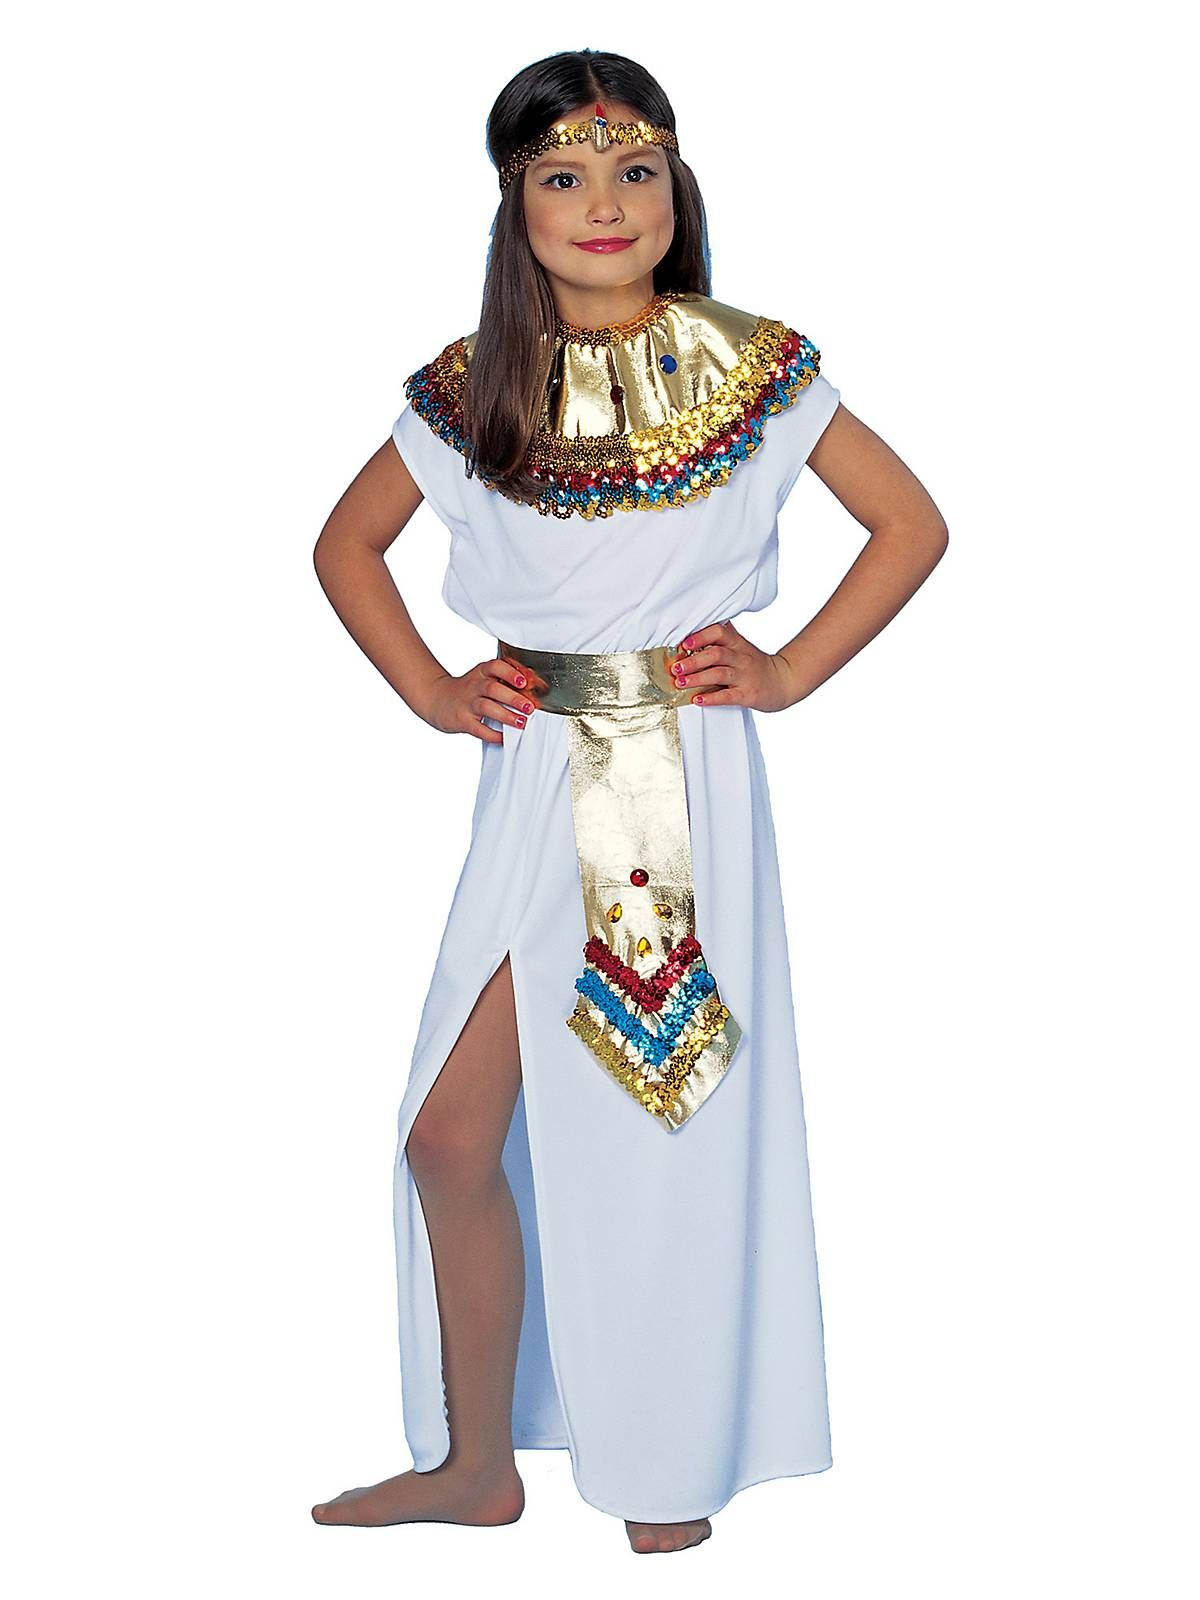 Cleopatra Kids Costume | Wholesale Egyptian Costumes for Girls  sc 1 st  Pinterest & Cleopatra Child Costume | Pinterest | Egyptian costume Cleopatra ...